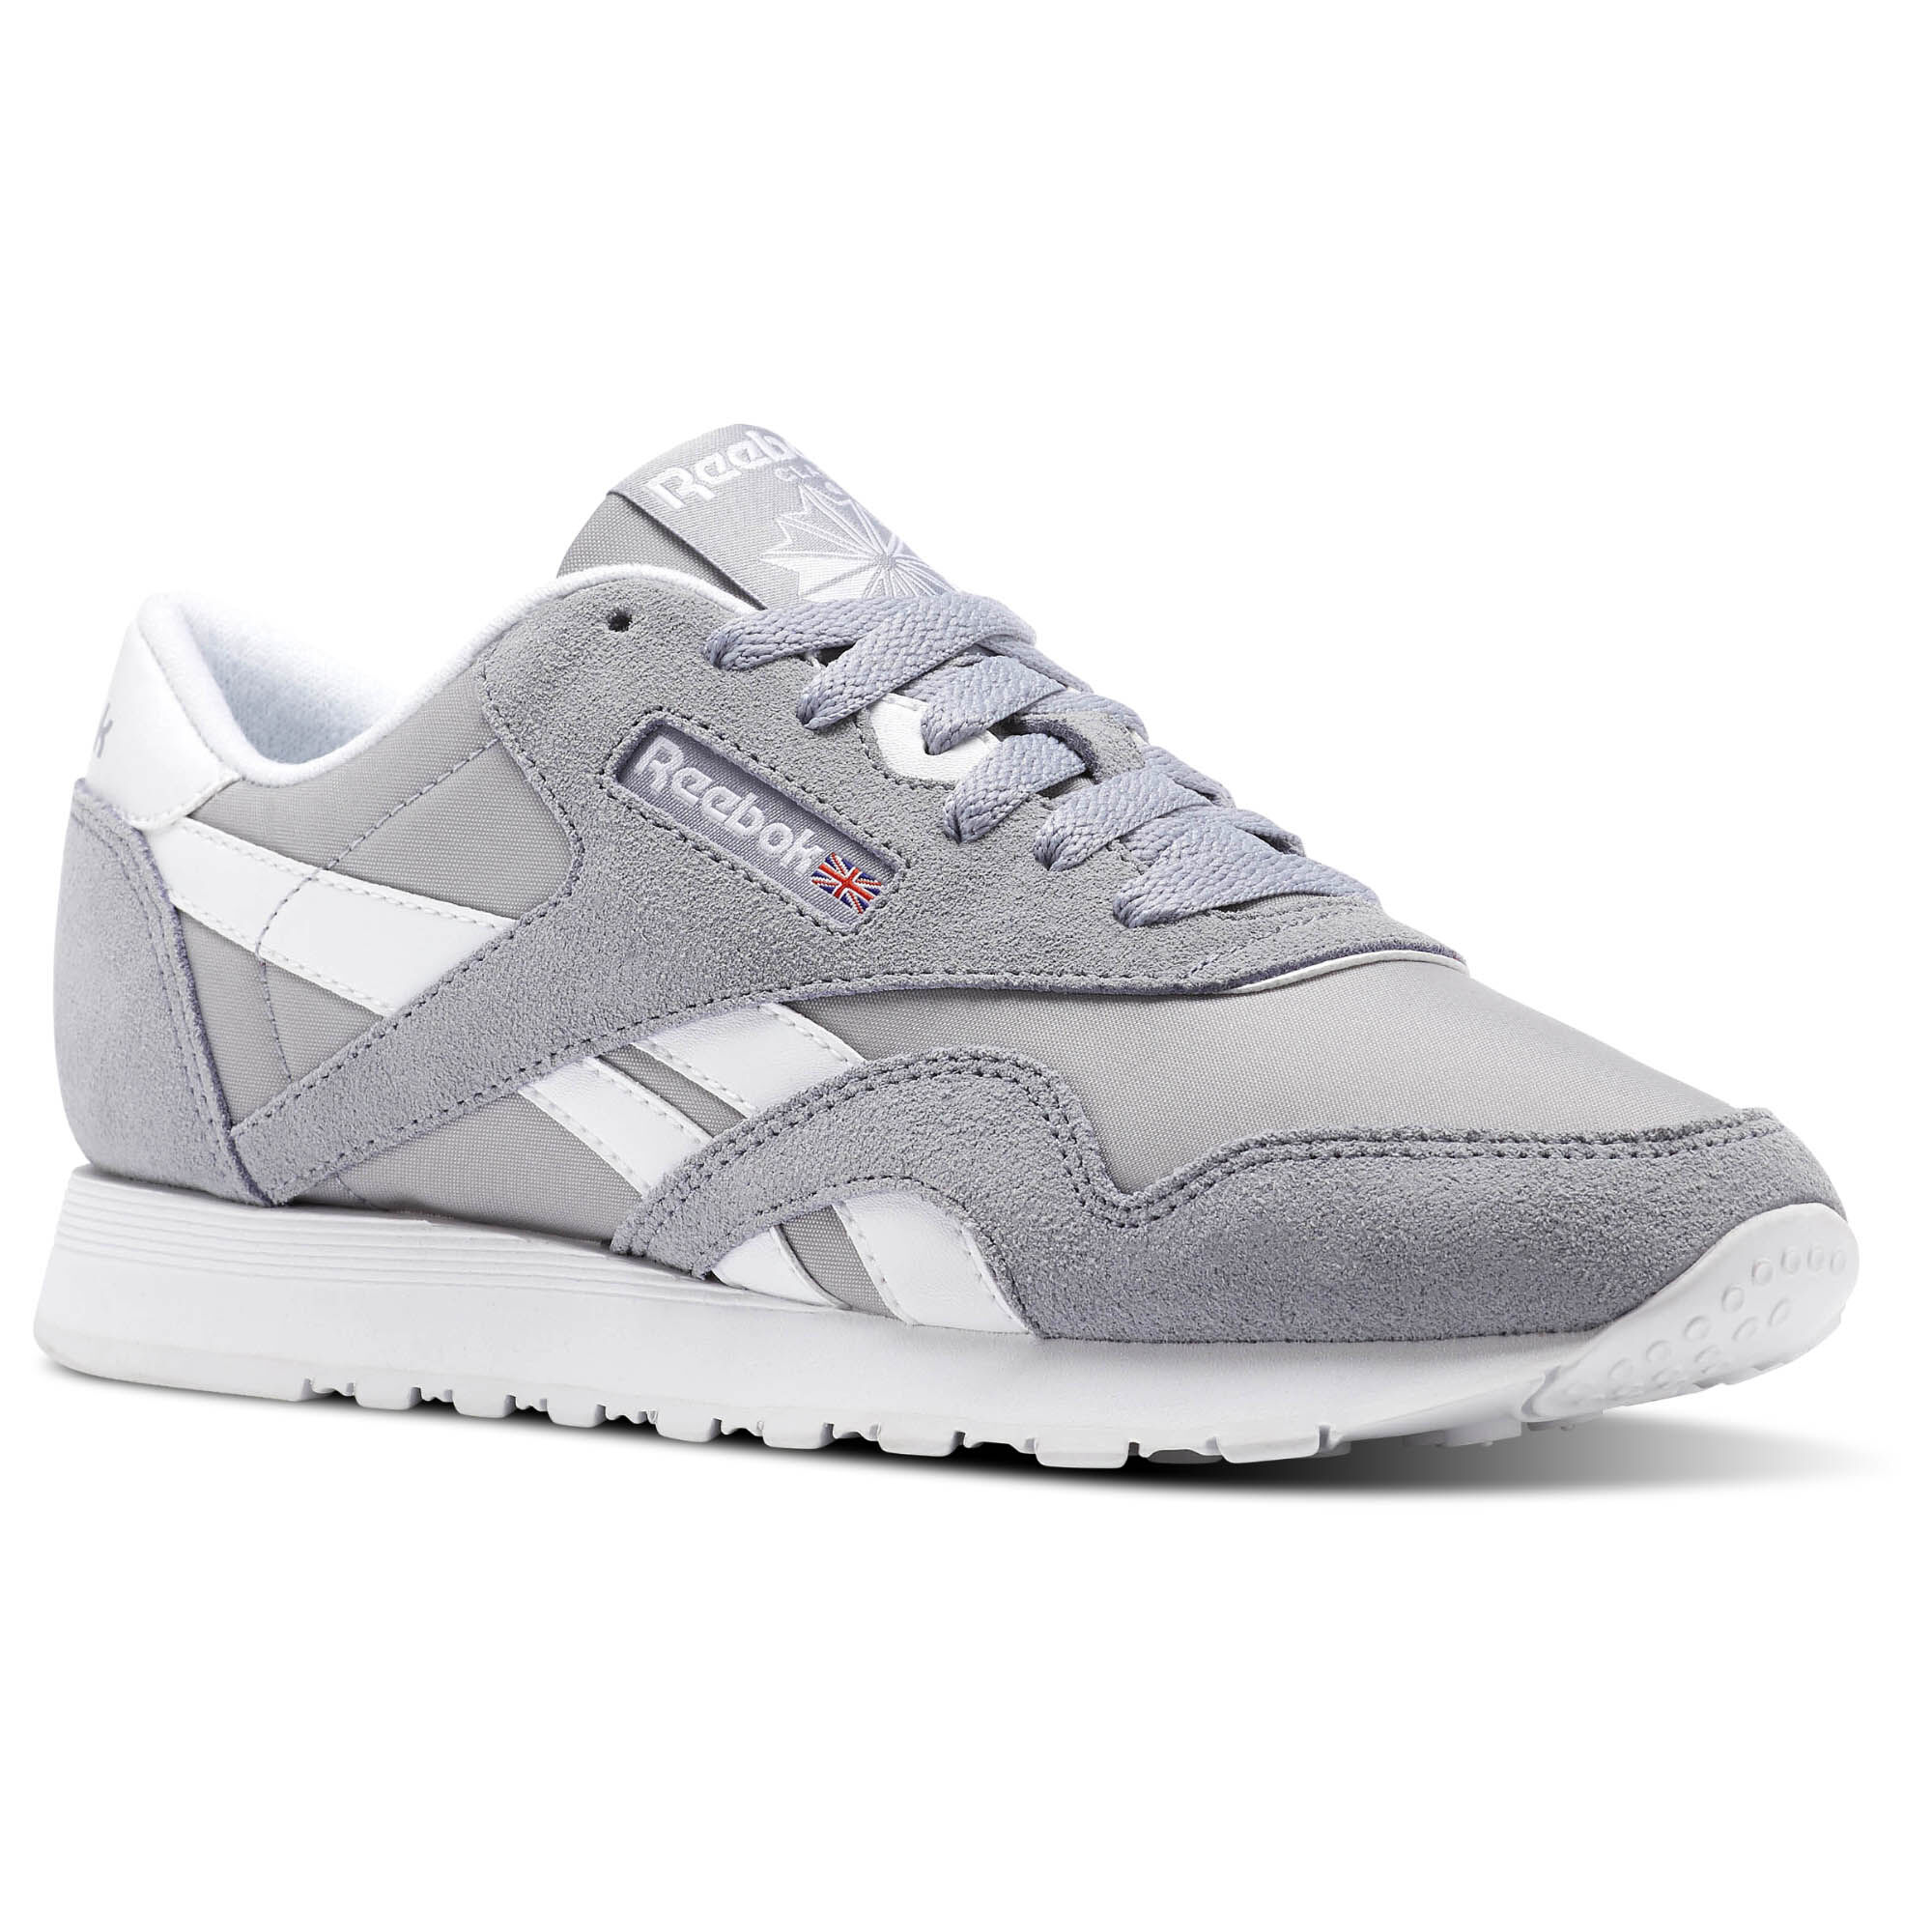 Reebok - Classic Nylon Neutrals Cool Shadow/White BS9376